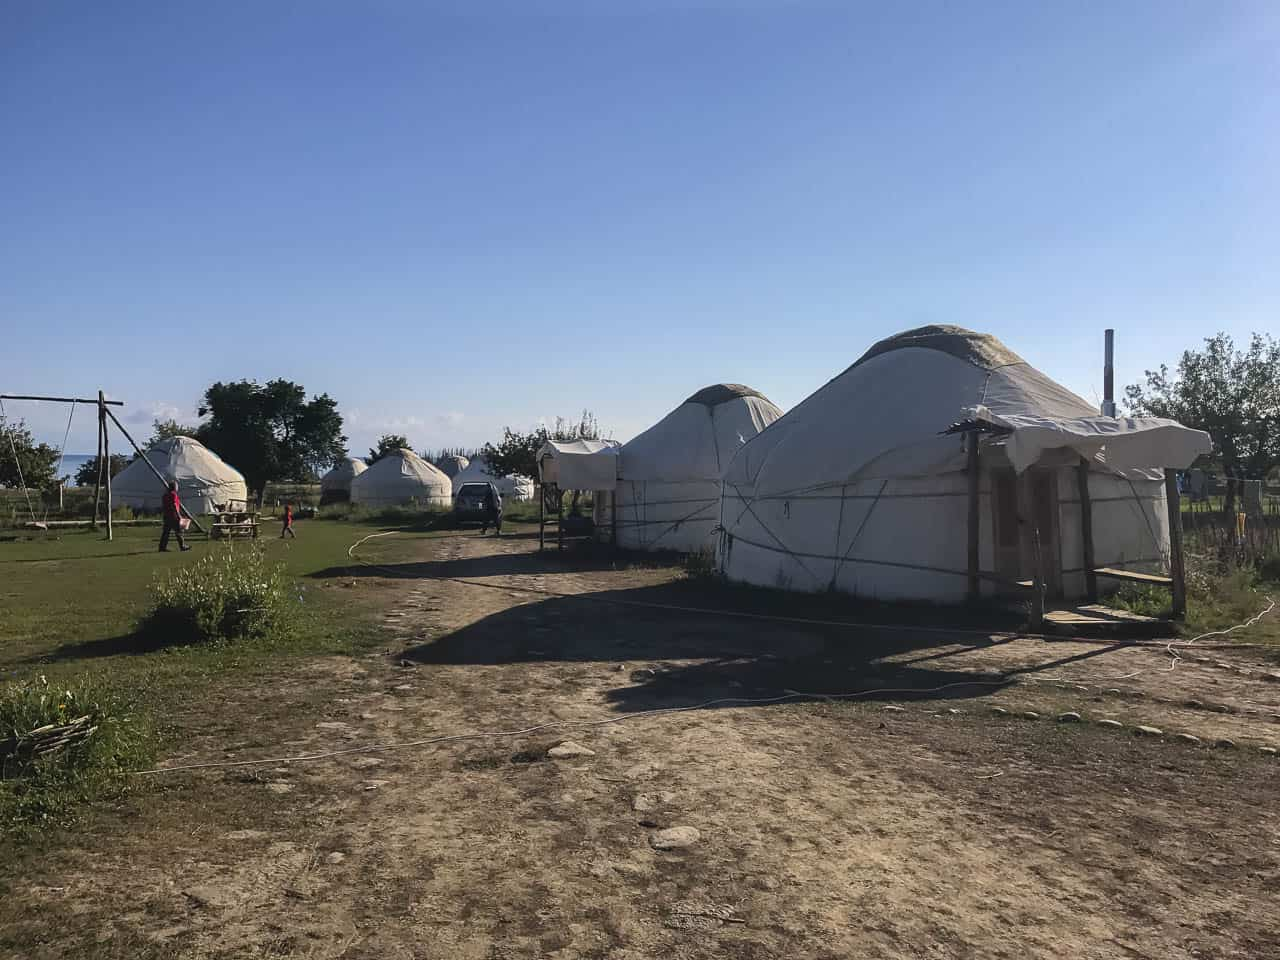 Almaluu Yurt Camp